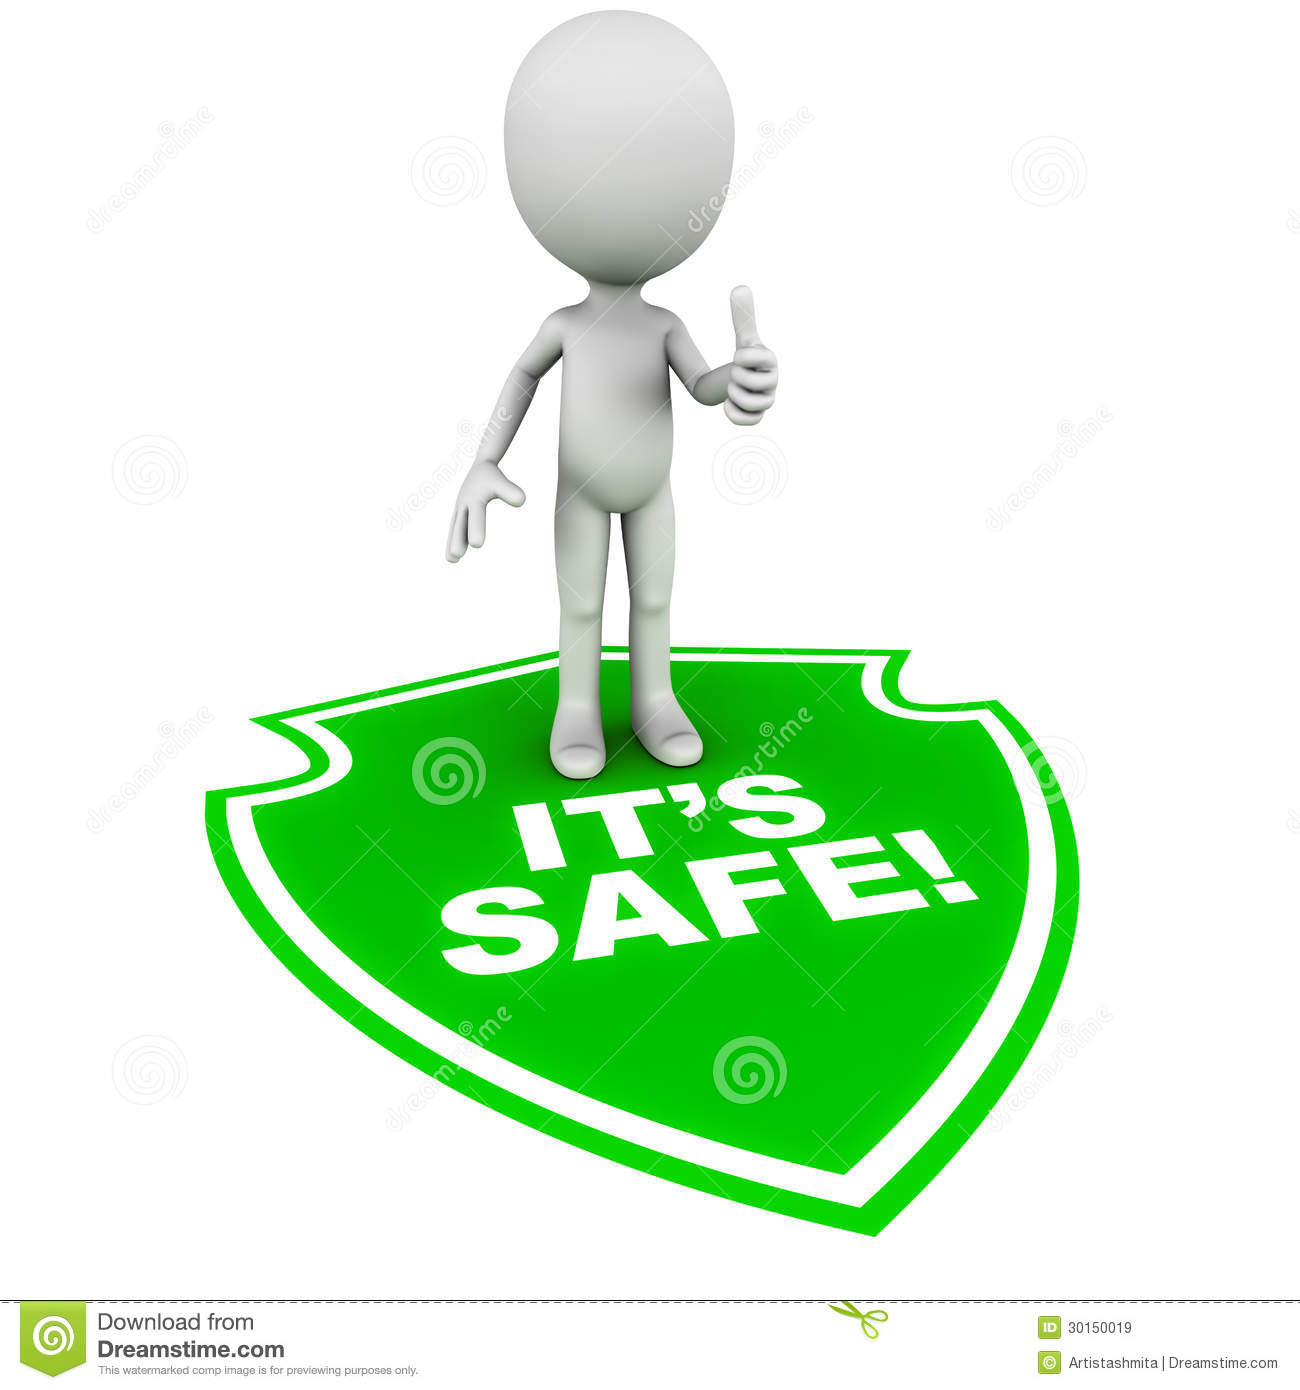 is safe dating network real Safe dating network posts about safe written by anonymous in recent weeks, we have noticed spam activity on tinder claiming to promote safety in online dating in messages to usersthis is used as a lure to funnel affiliate money into the scammers' pocketsit's the latest spam trend to hit the mobile dating appsince 2013, we have published a.